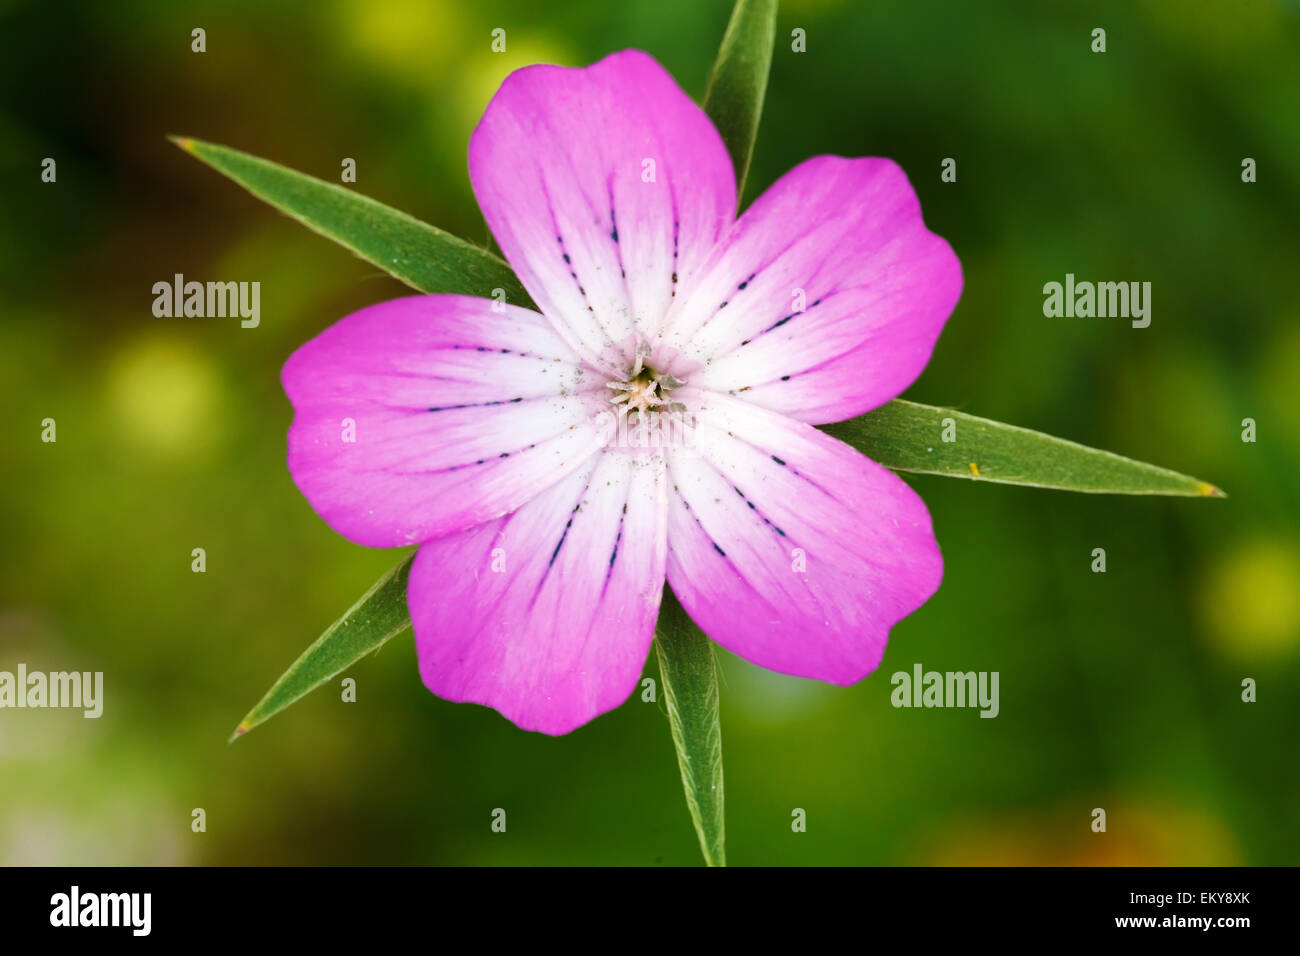 Flower With Five Petals Stock Photos Amp Flower With Five